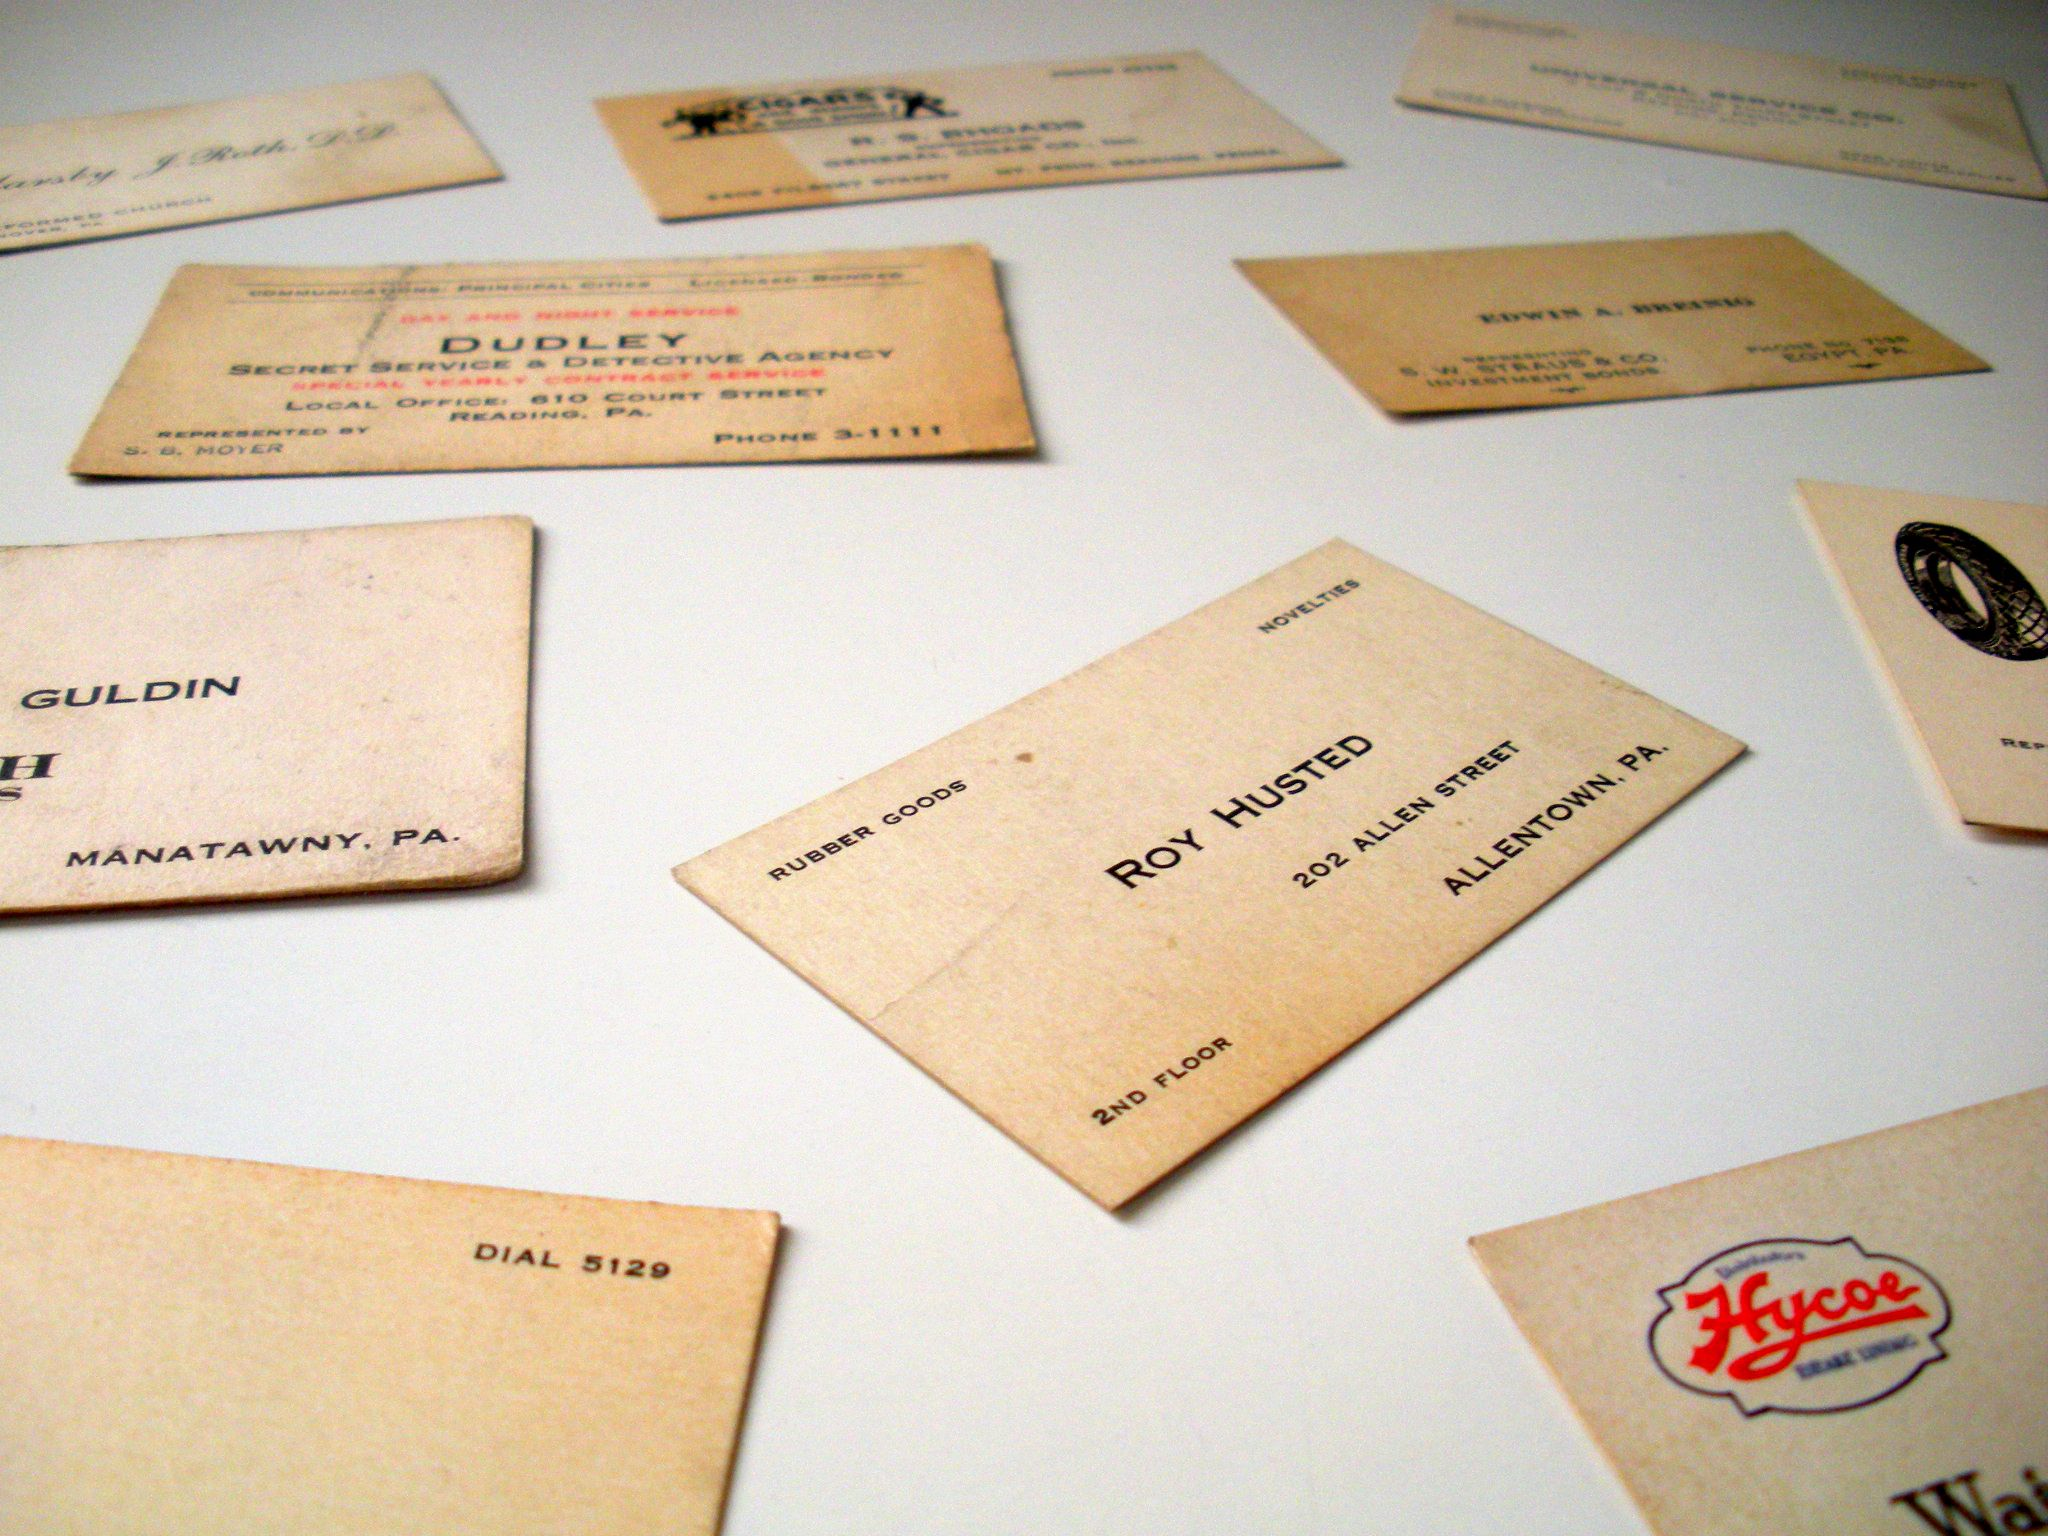 vintage business cards - Google Search | Business cards ...